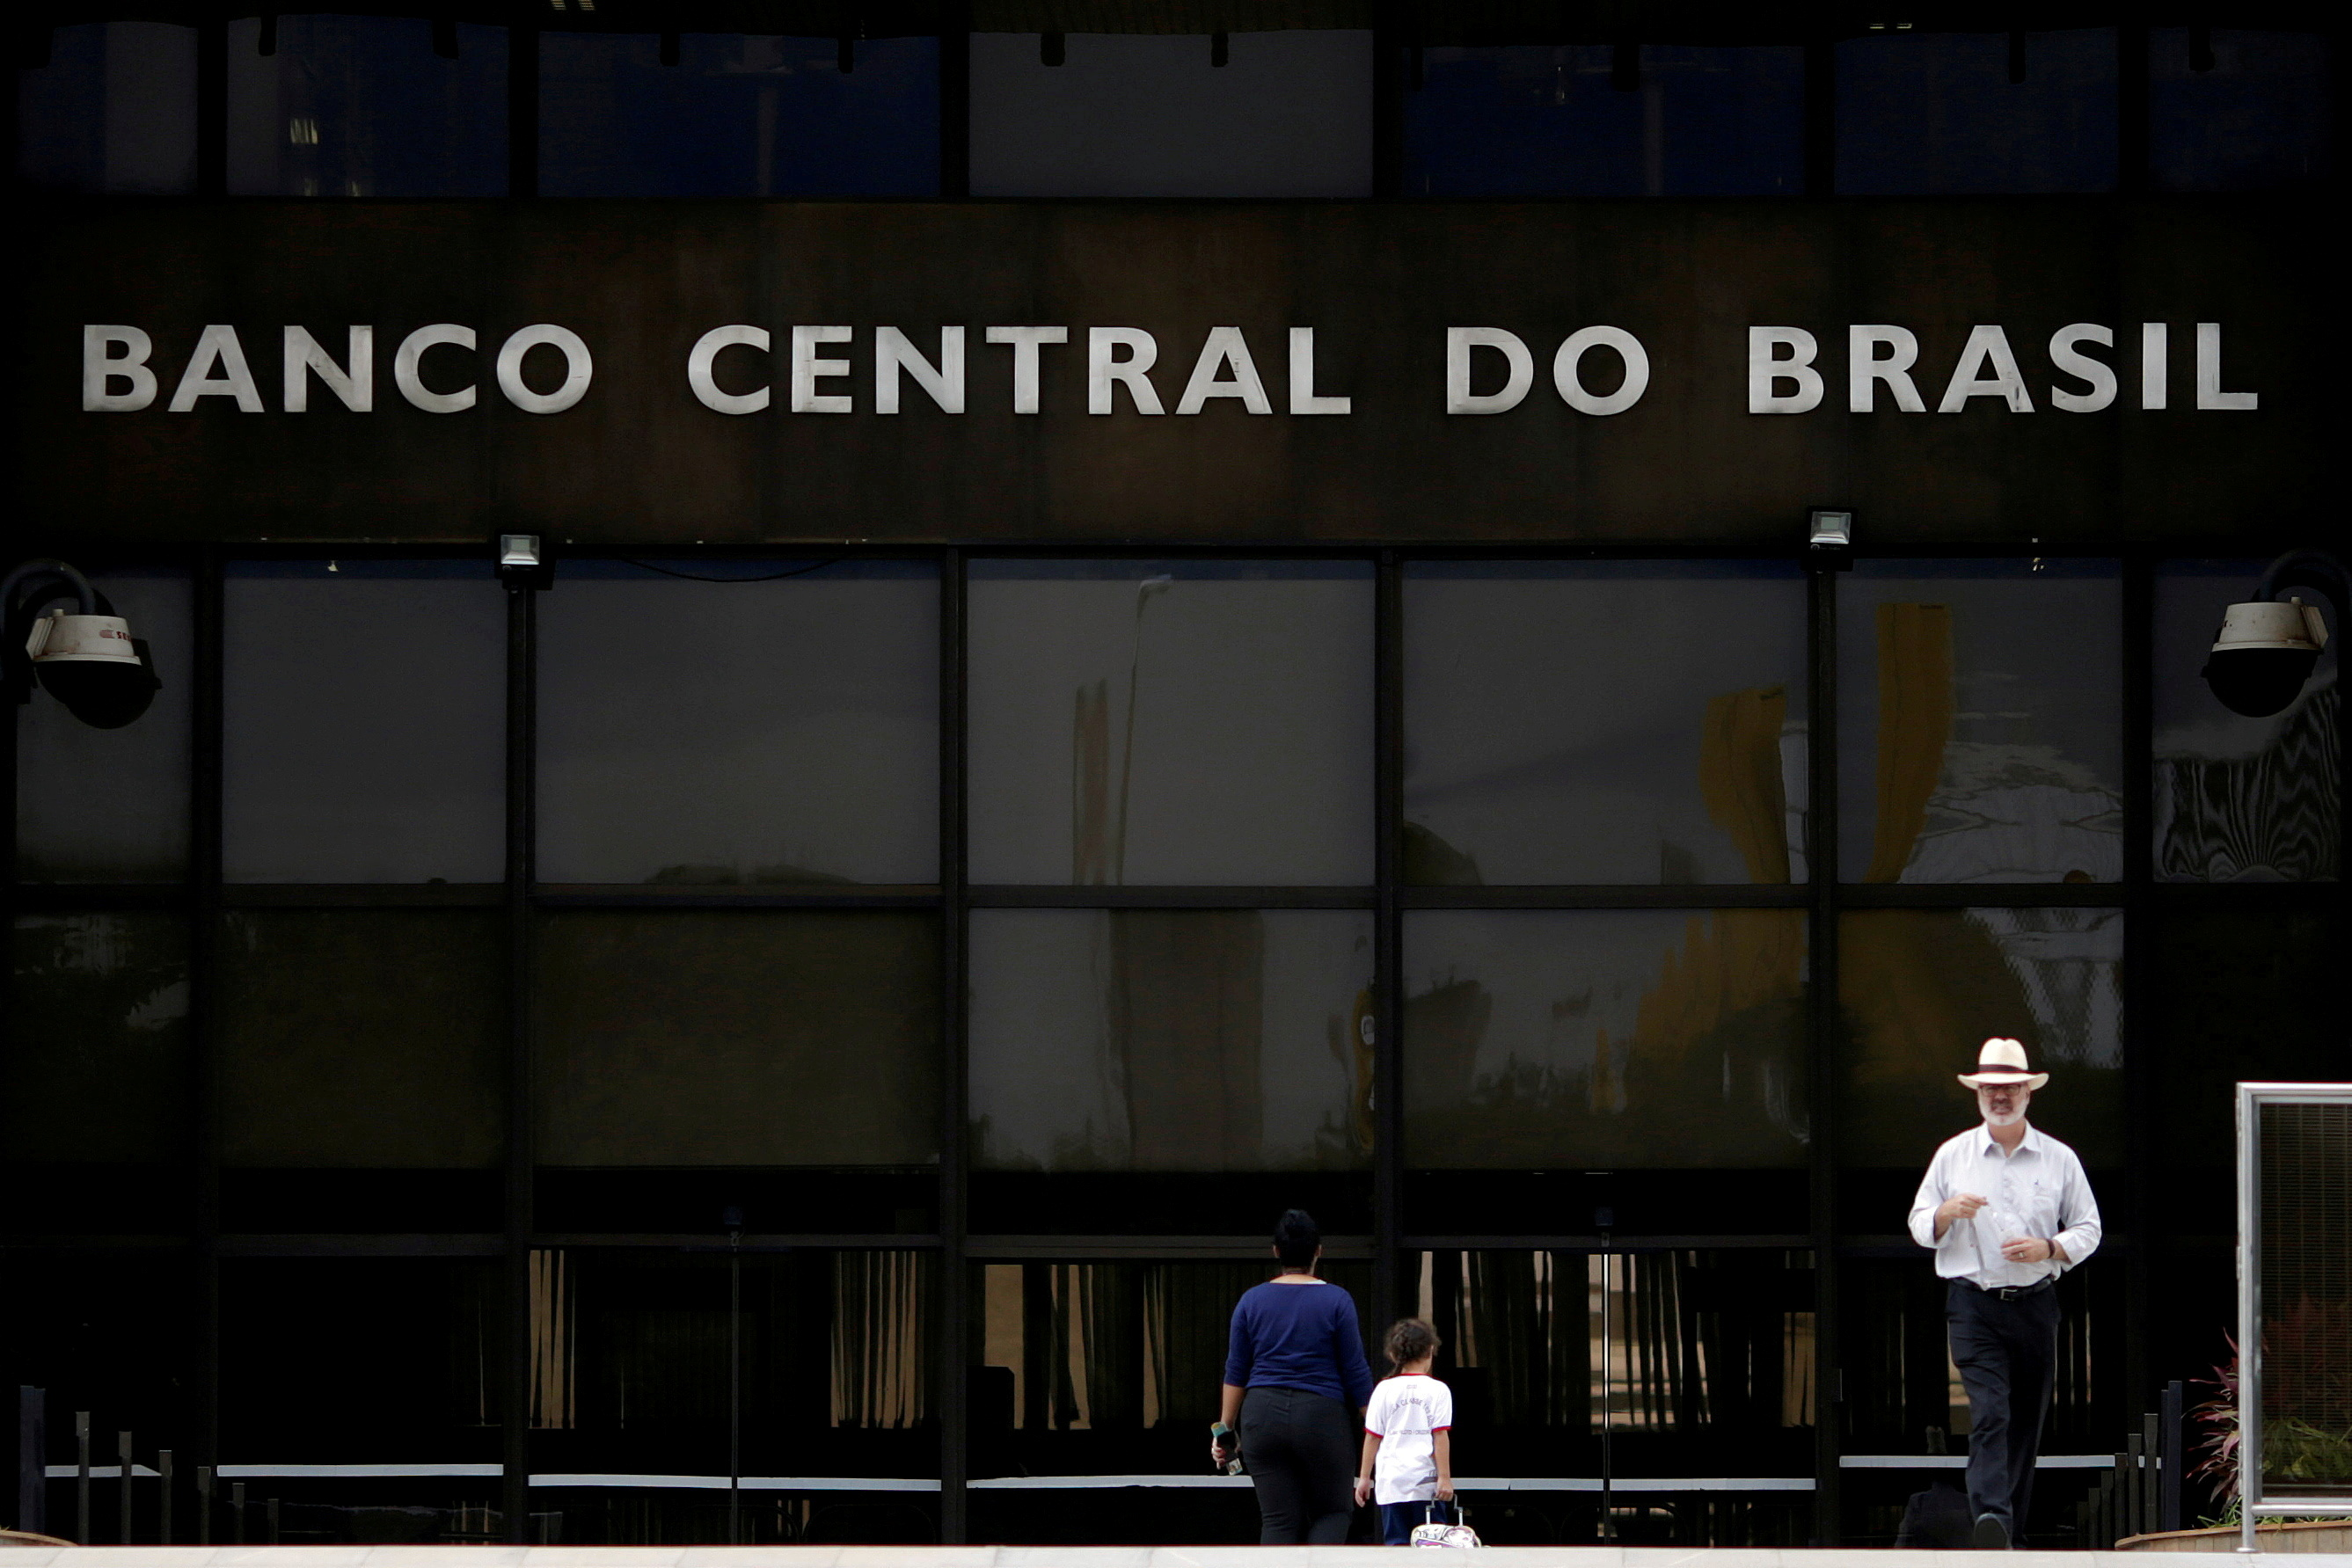 The central bank headquarters building is seen in Brasilia, Brazil May 16, 2017. REUTERS/Ueslei Marcelino